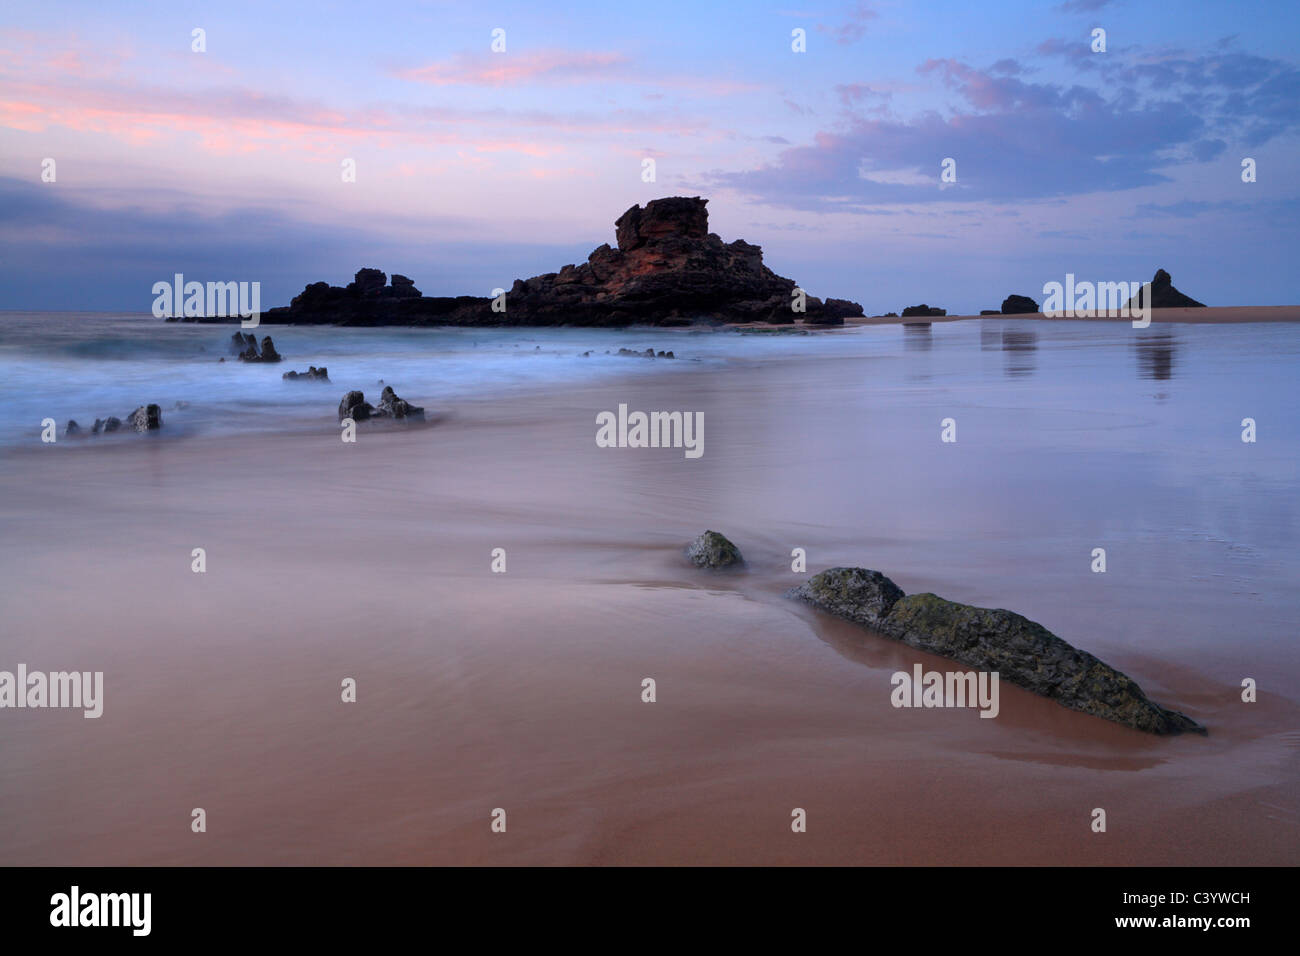 Sunset on the beautiful beach at Praia de Castelejo near Villa do Bispo in the Algarve region of Portugal - Stock Image